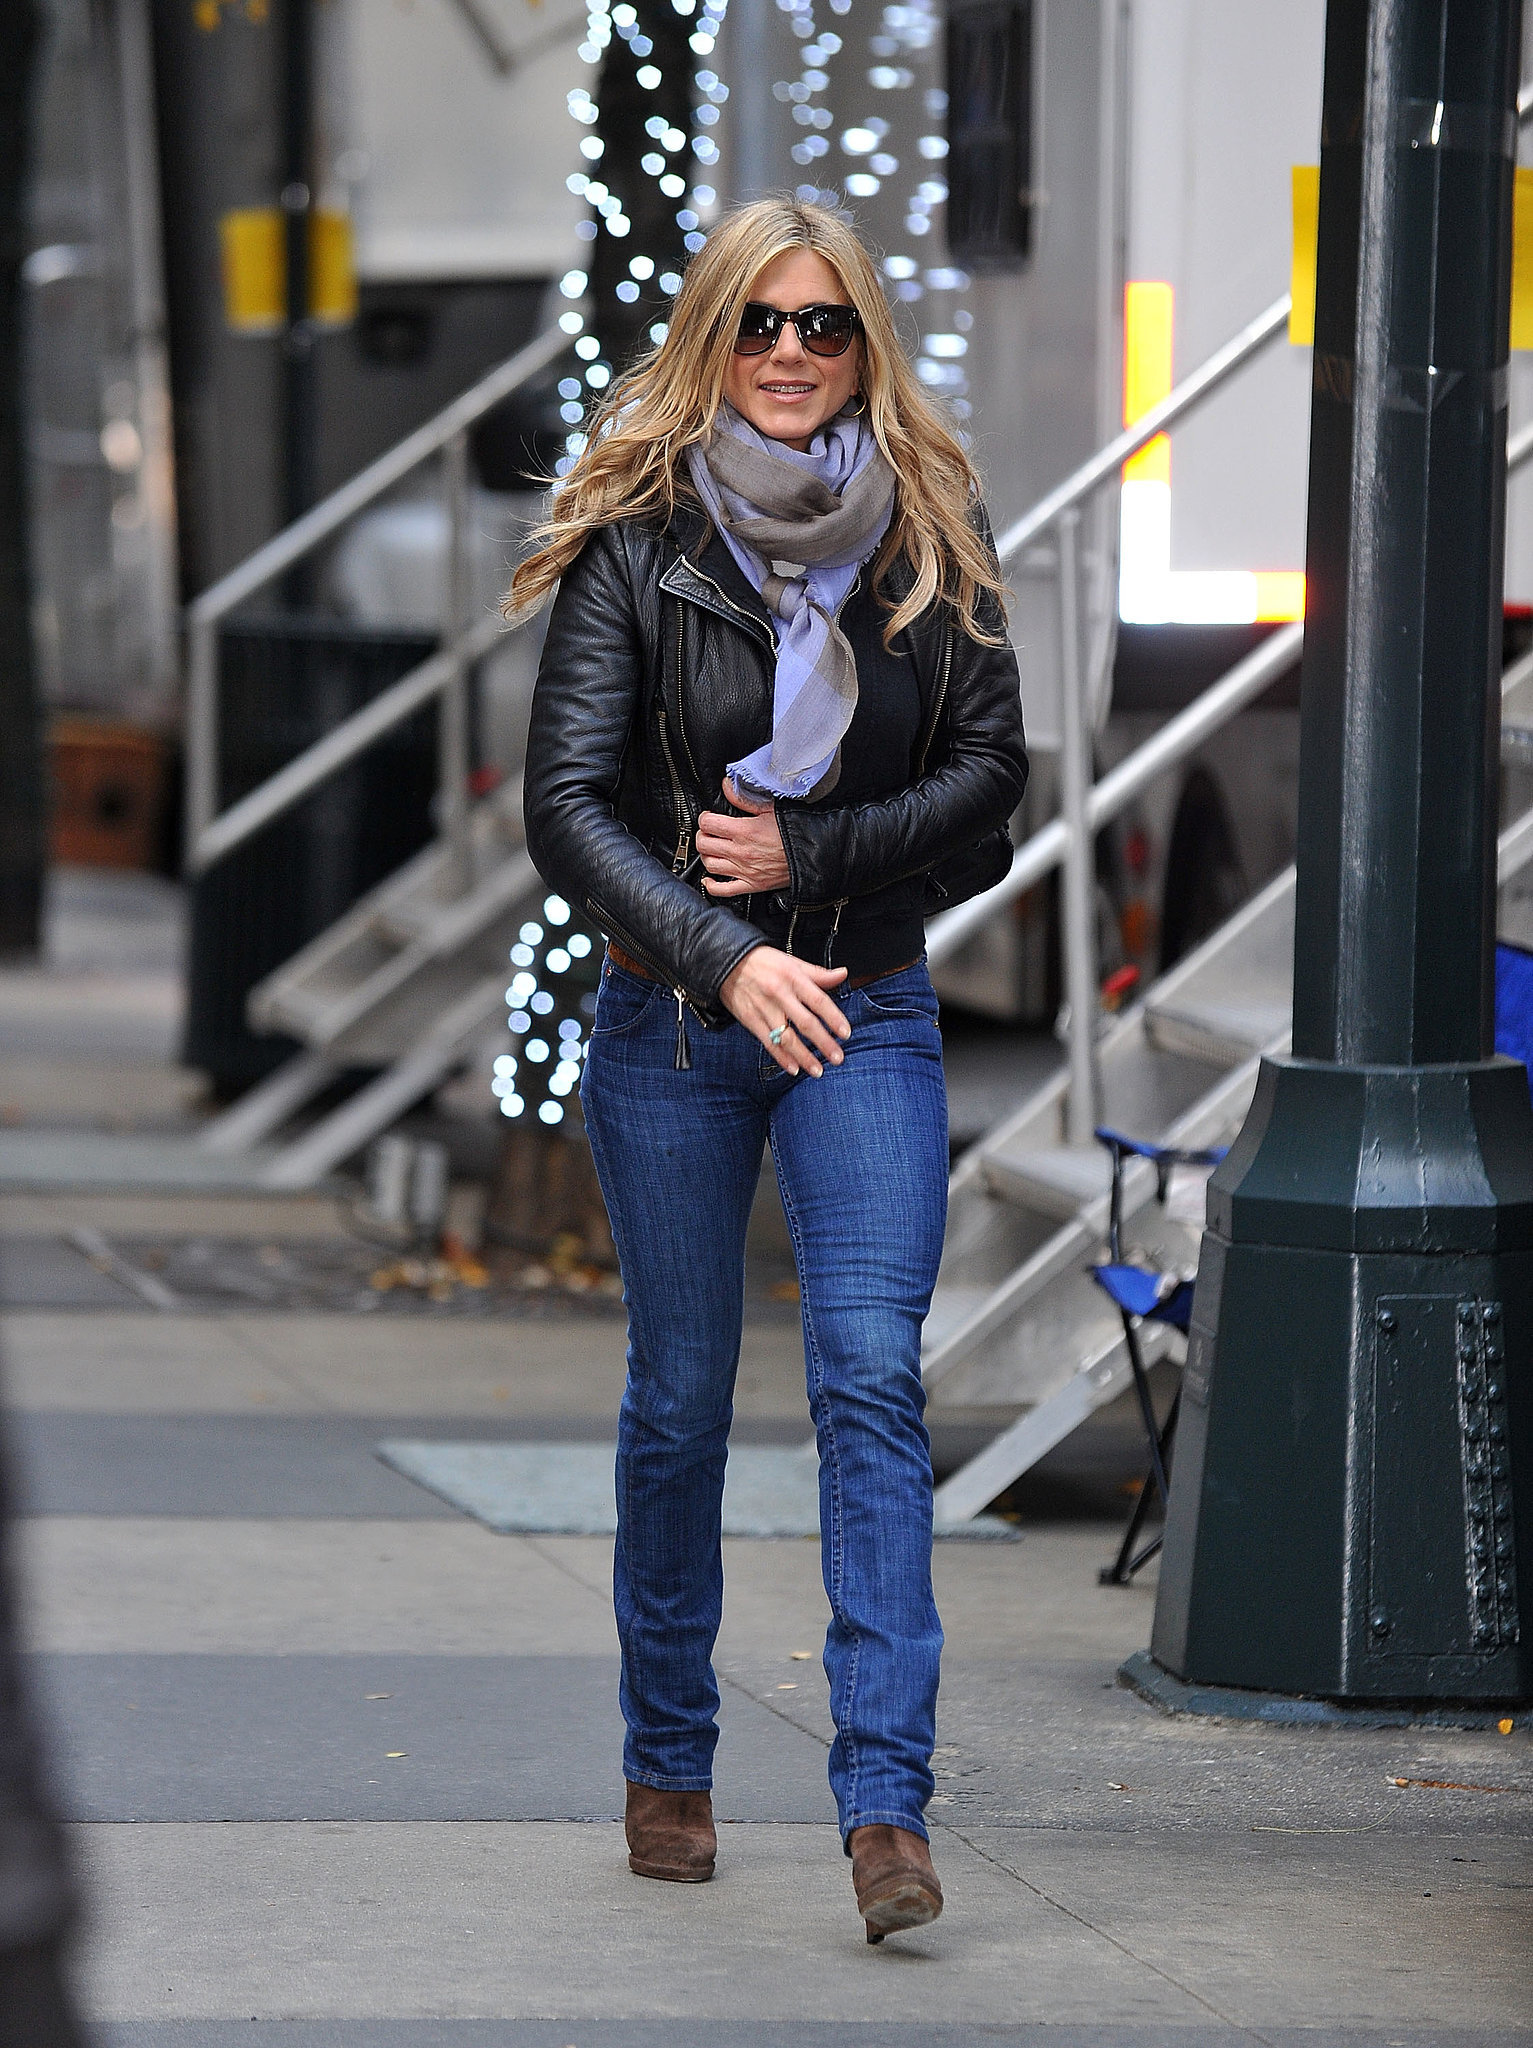 Jennifer Aniston 39 S Street Style So This Is The Secret To Jennifer Aniston 39 S Effortless Street